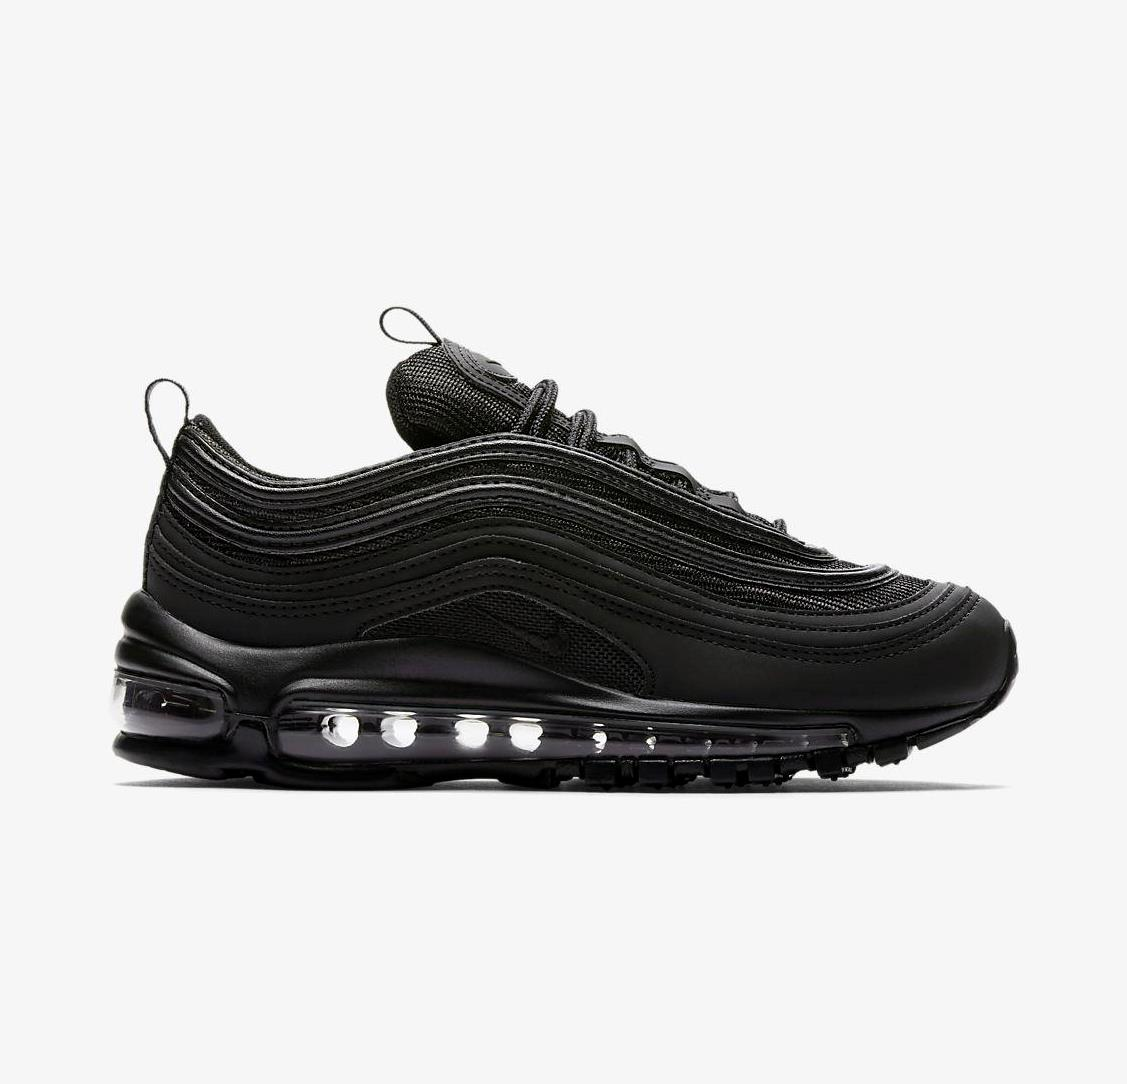 Nike Air Max kengät The Athlete's Foot